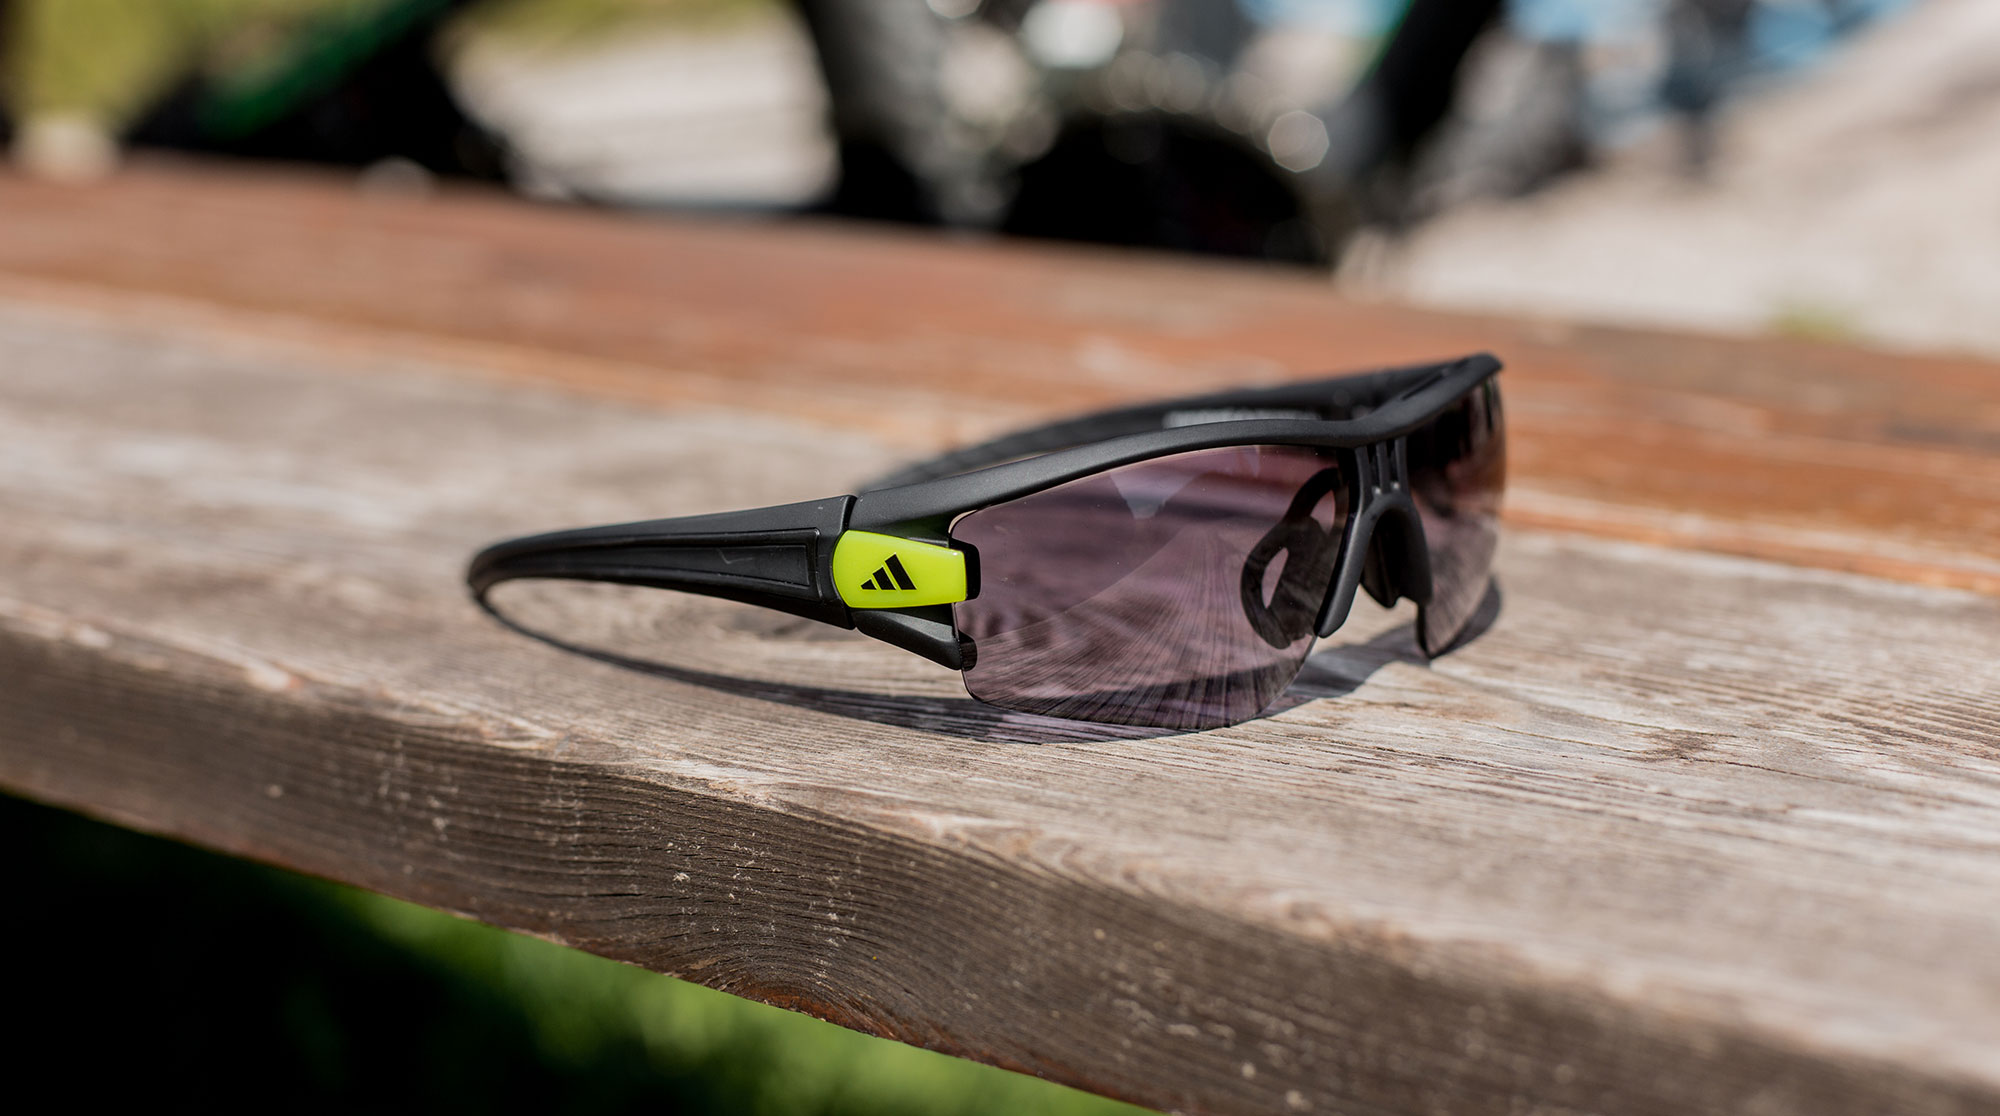 Perforar metano Visualizar  MTB Brille im Test: adidas eyewear evil eye pro vario